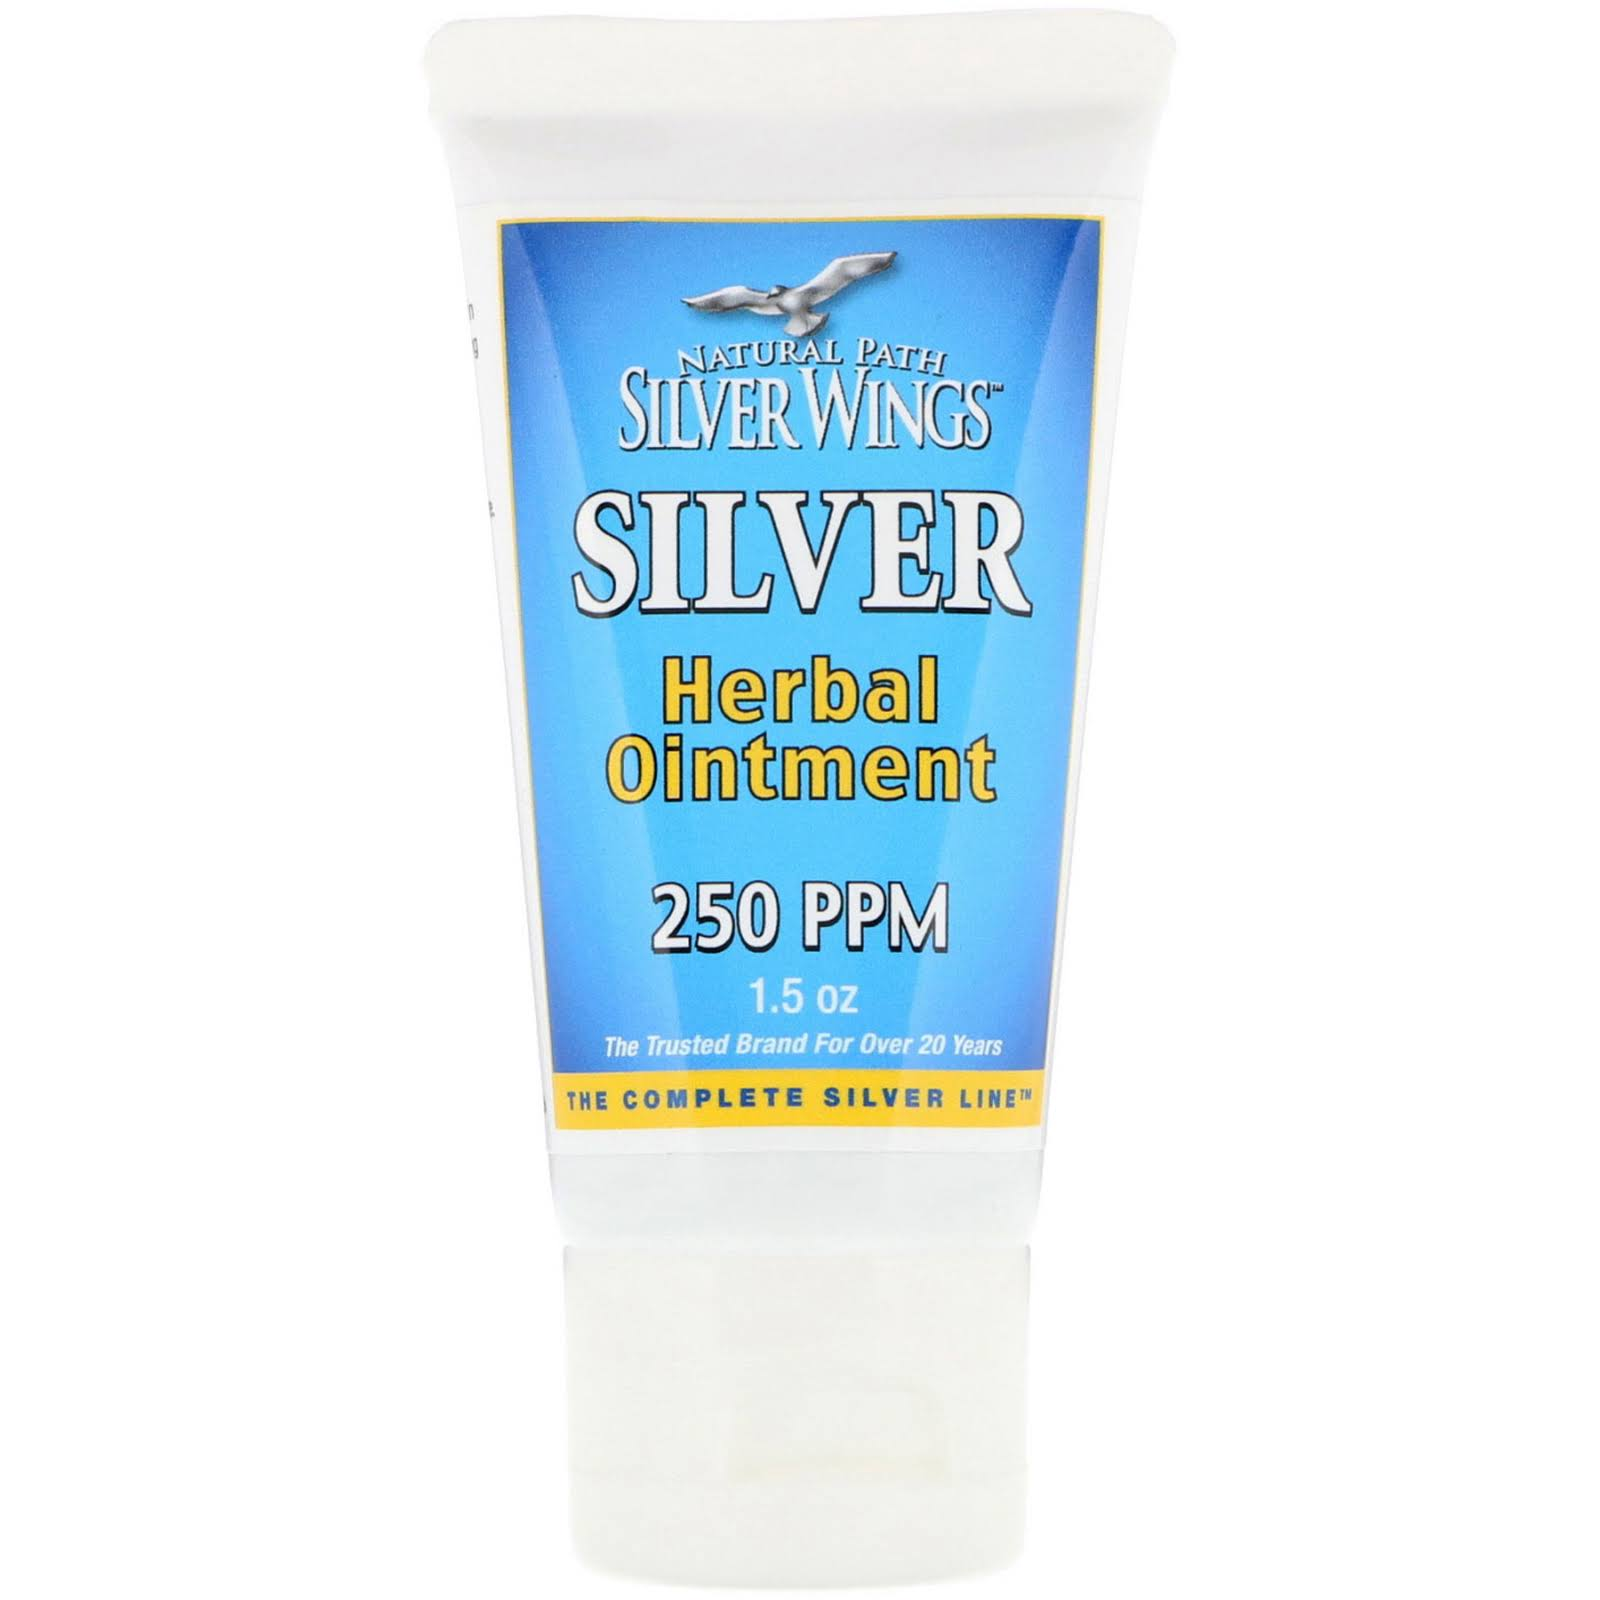 Natural Path Silver Wings Silver Herbal Ointment - 1.5oz